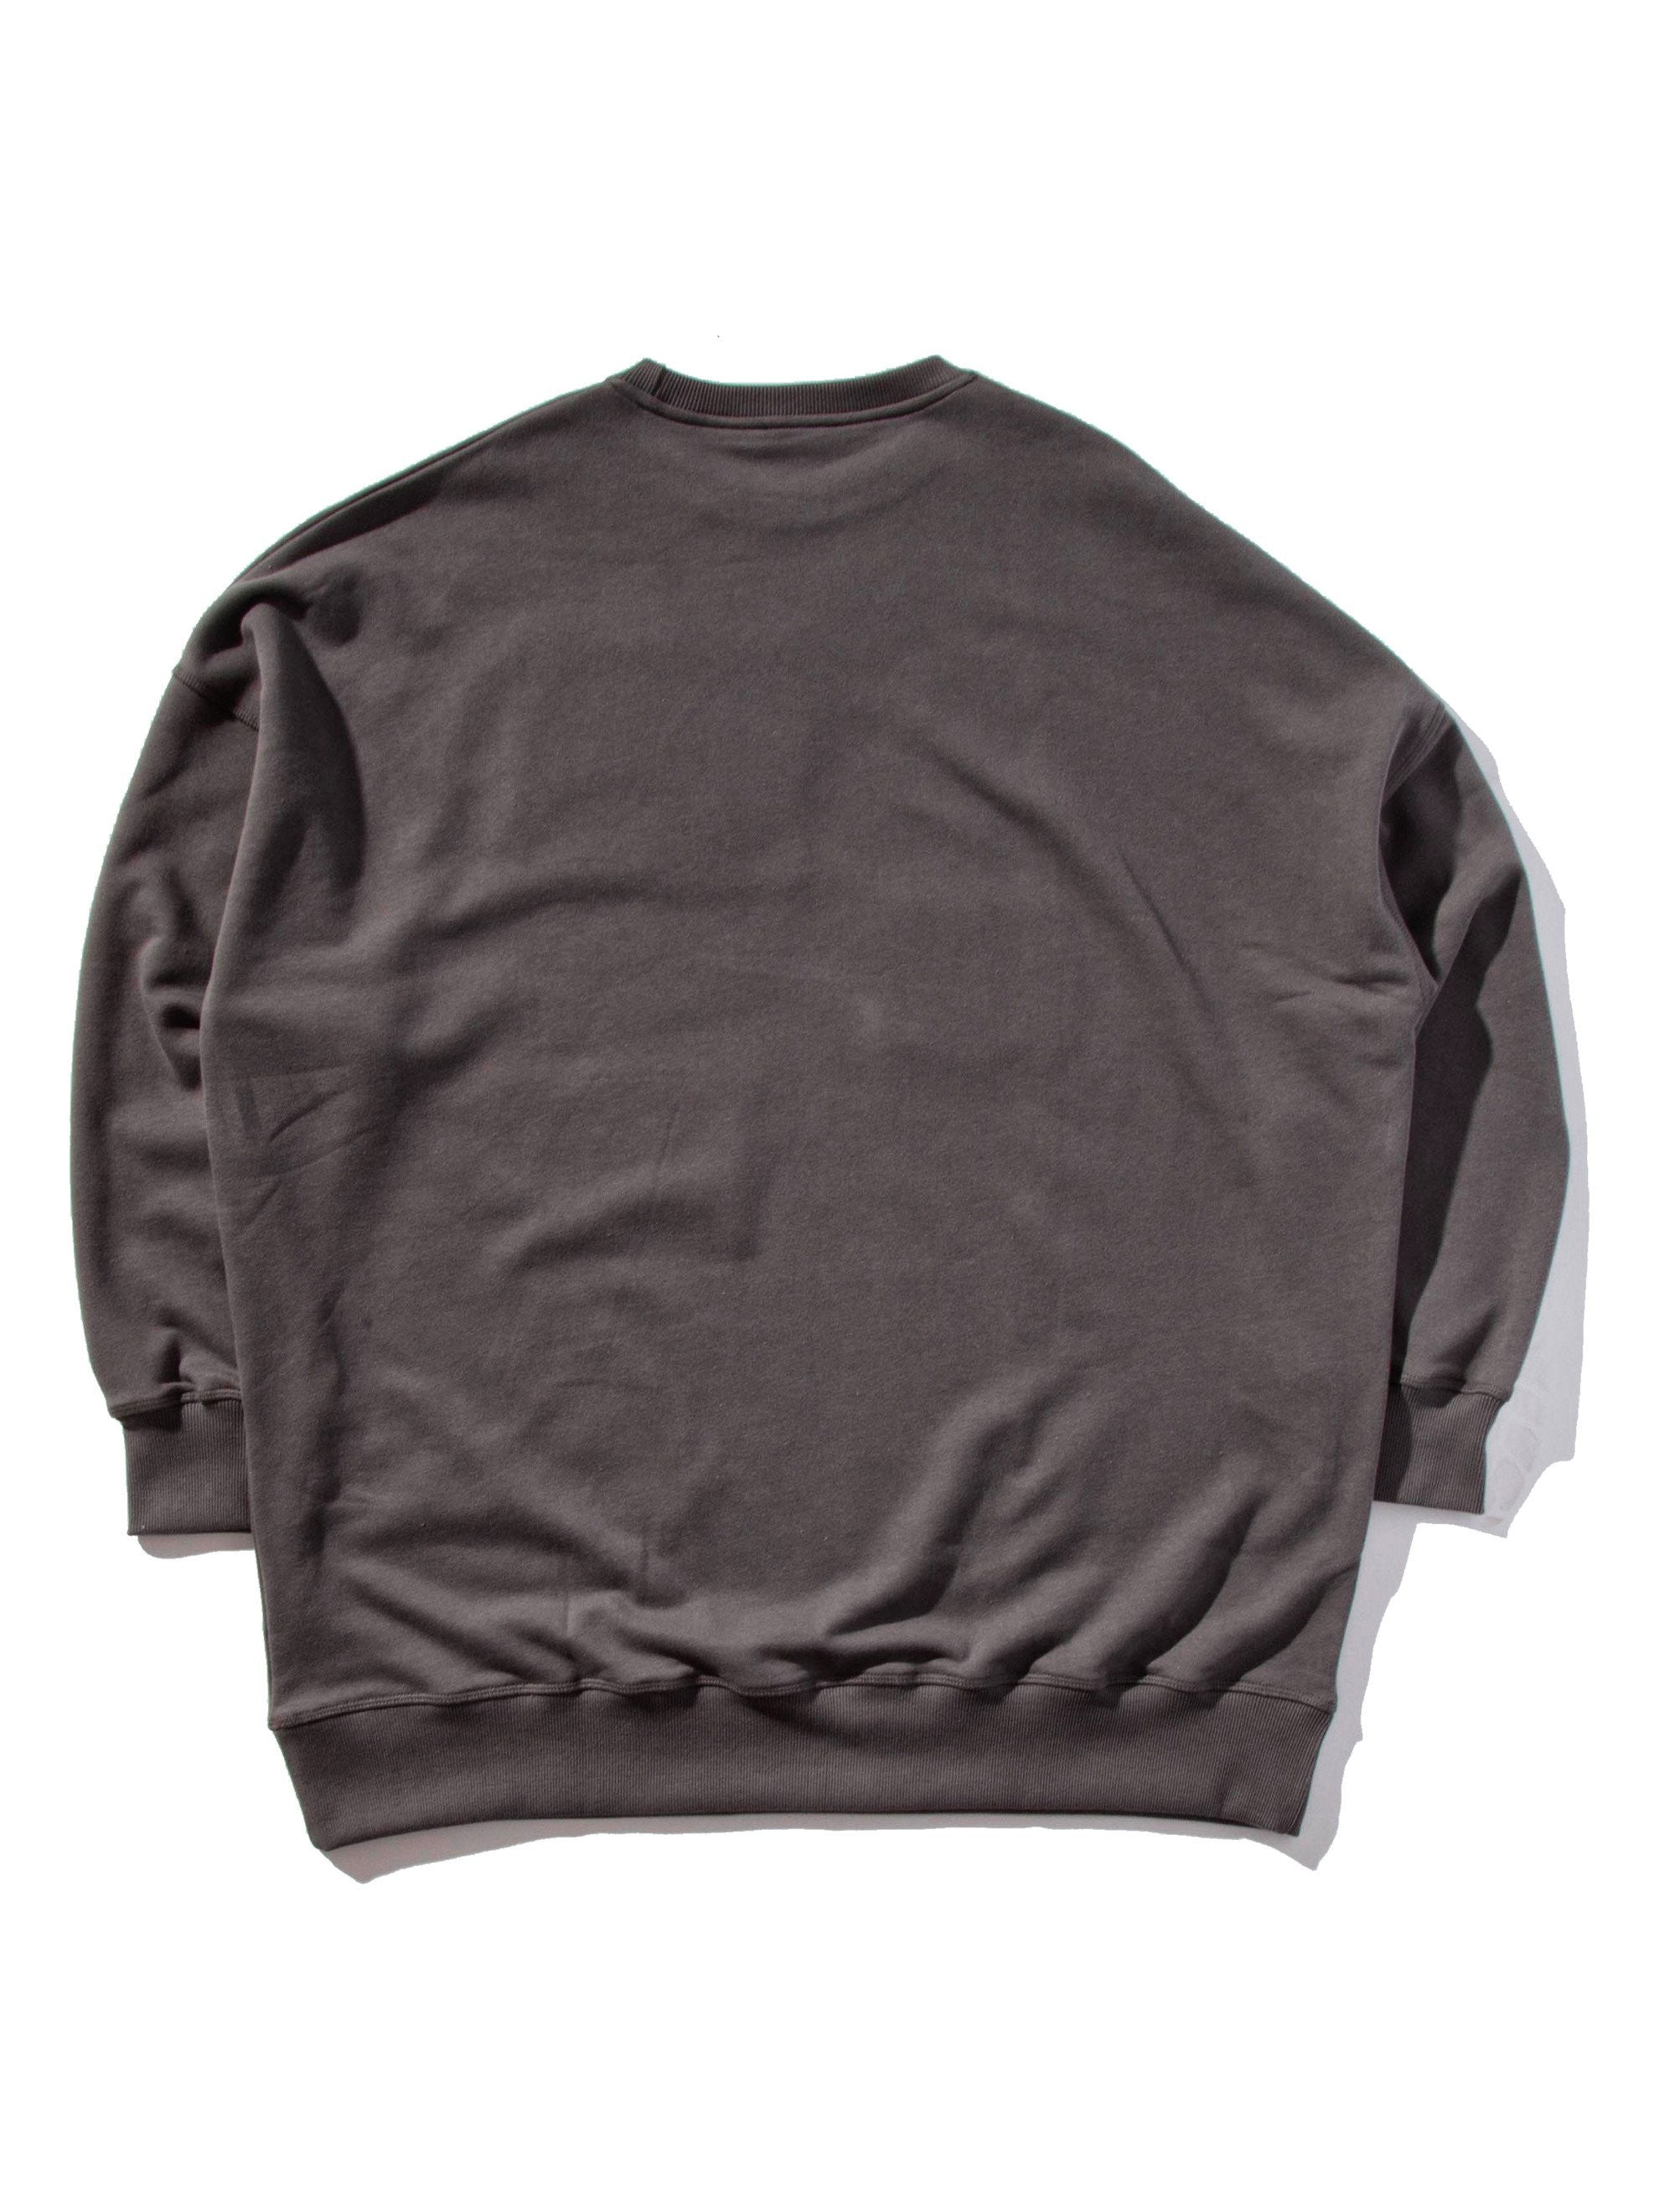 Anthracite Oversized Sweatshirt (Crotchet Patches) 8